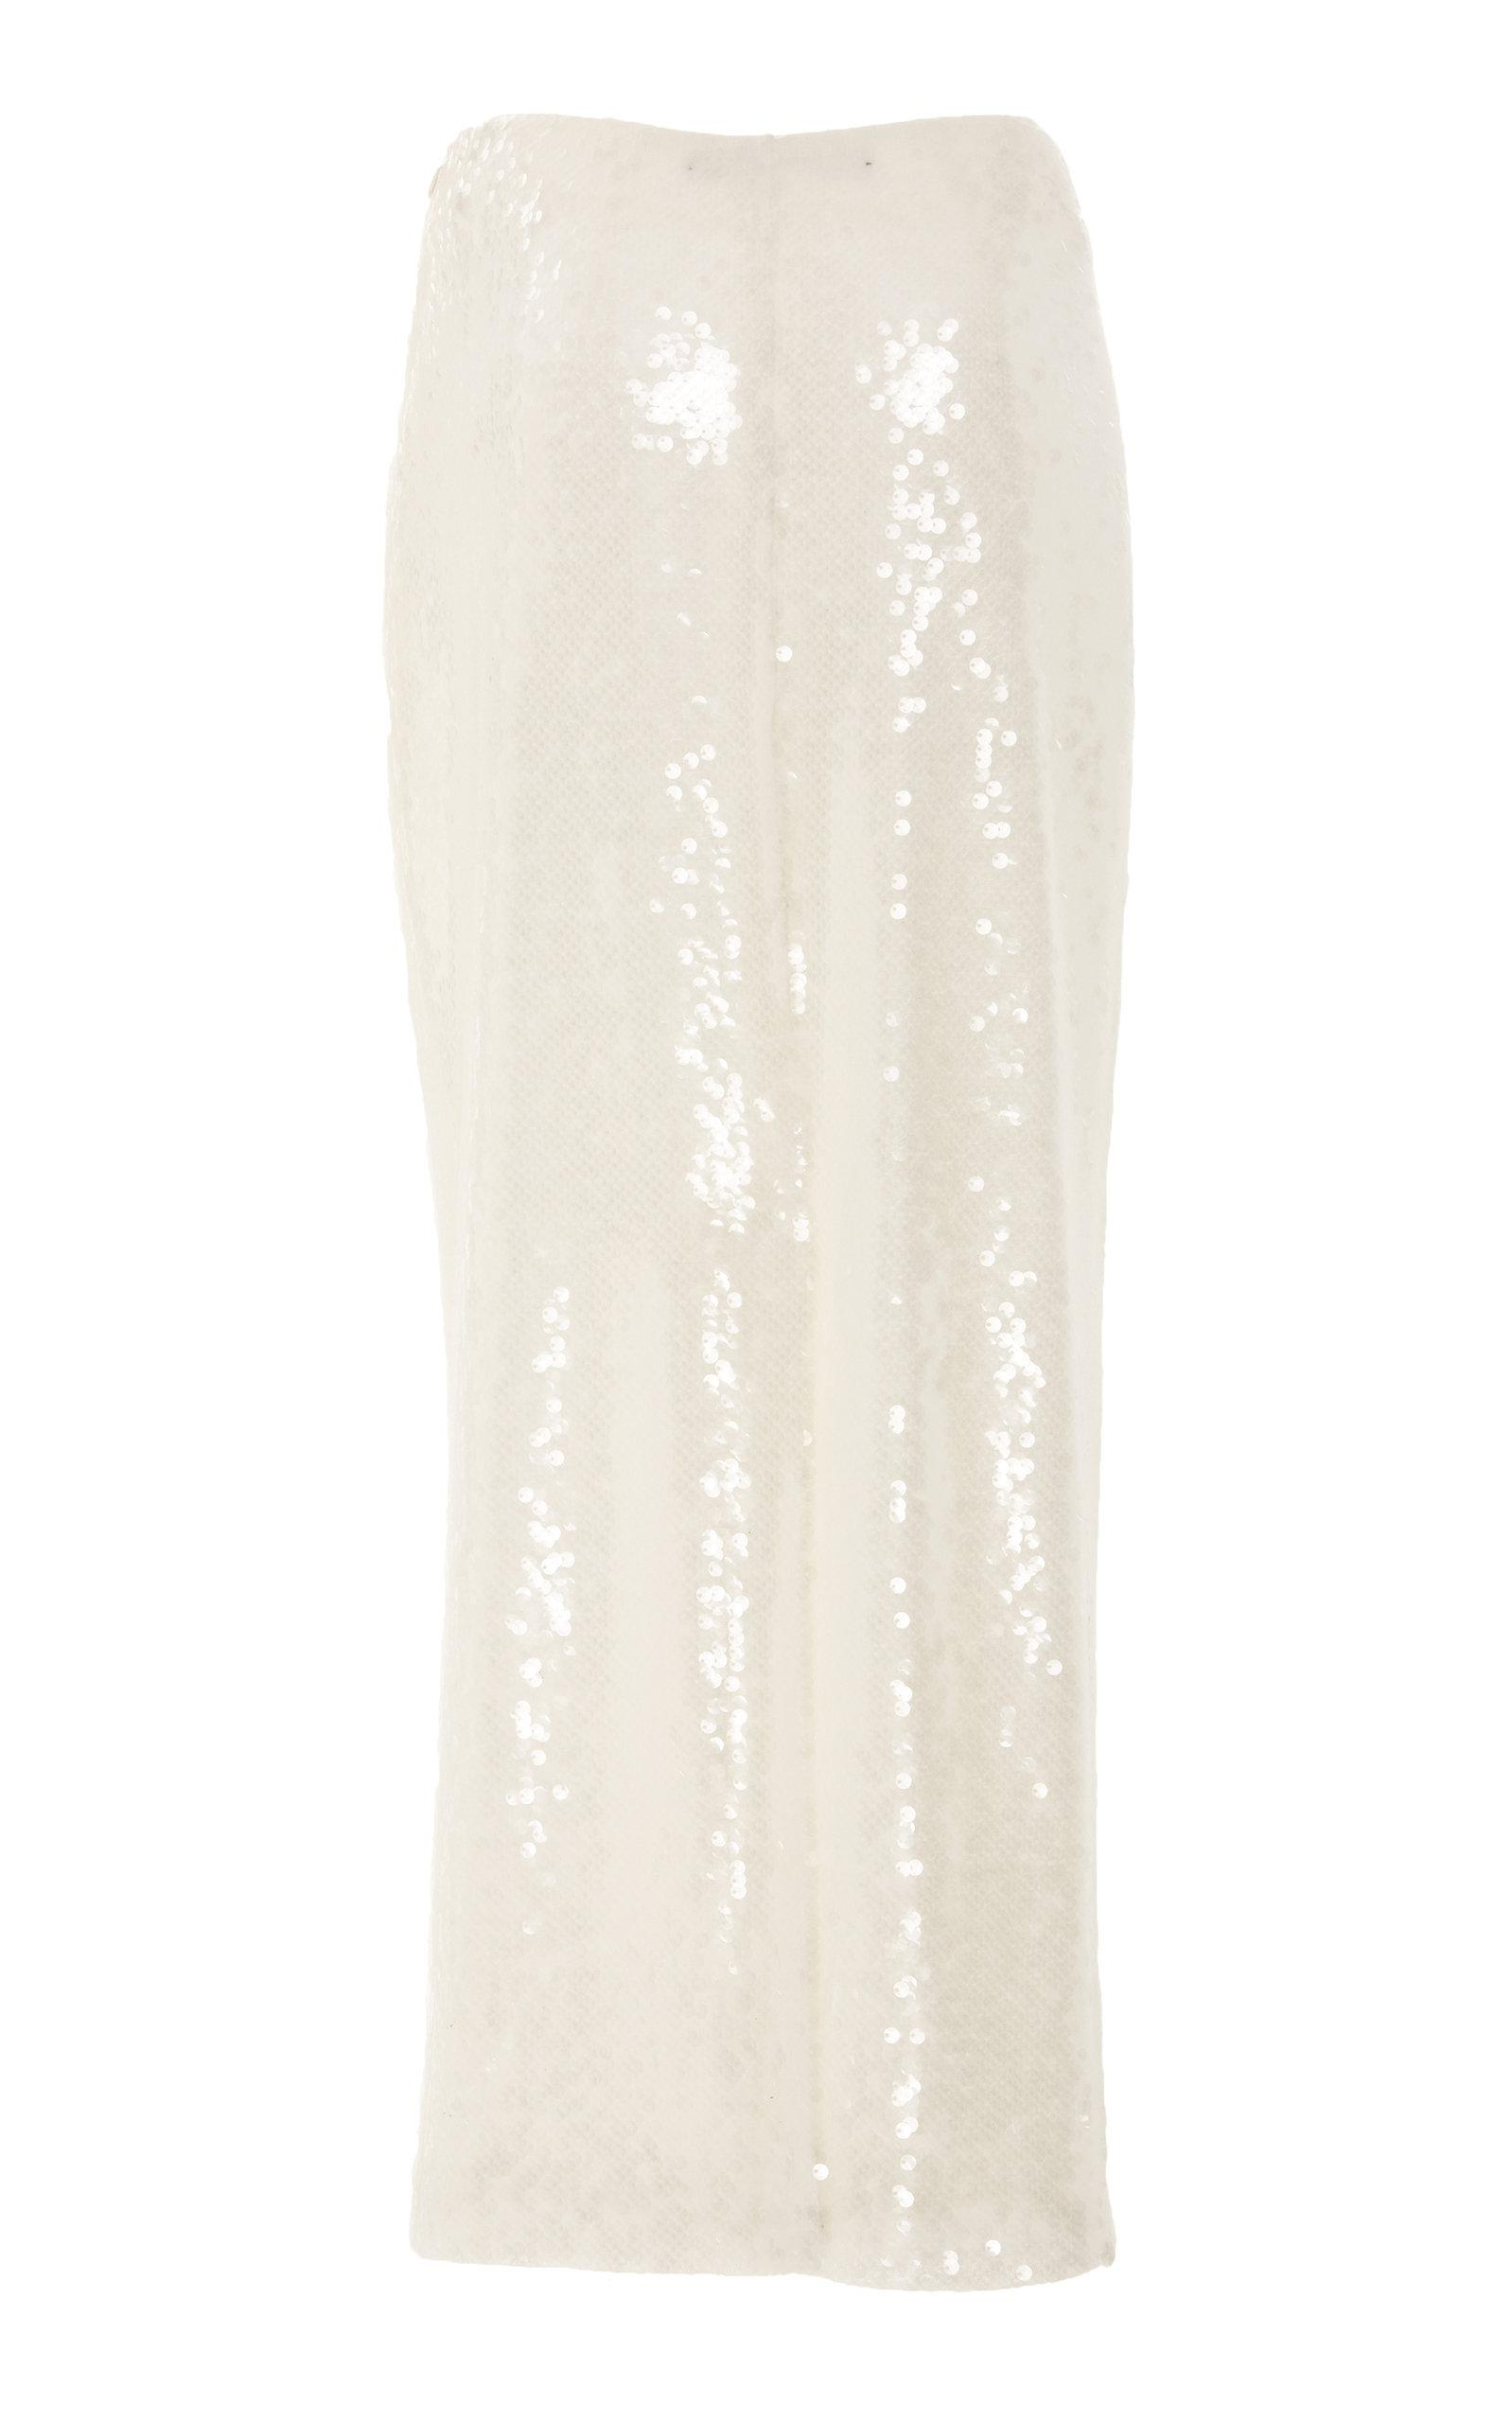 38ad0768bb Sally Lapointe Sequin Midi Pencil Skirt in White - Lyst